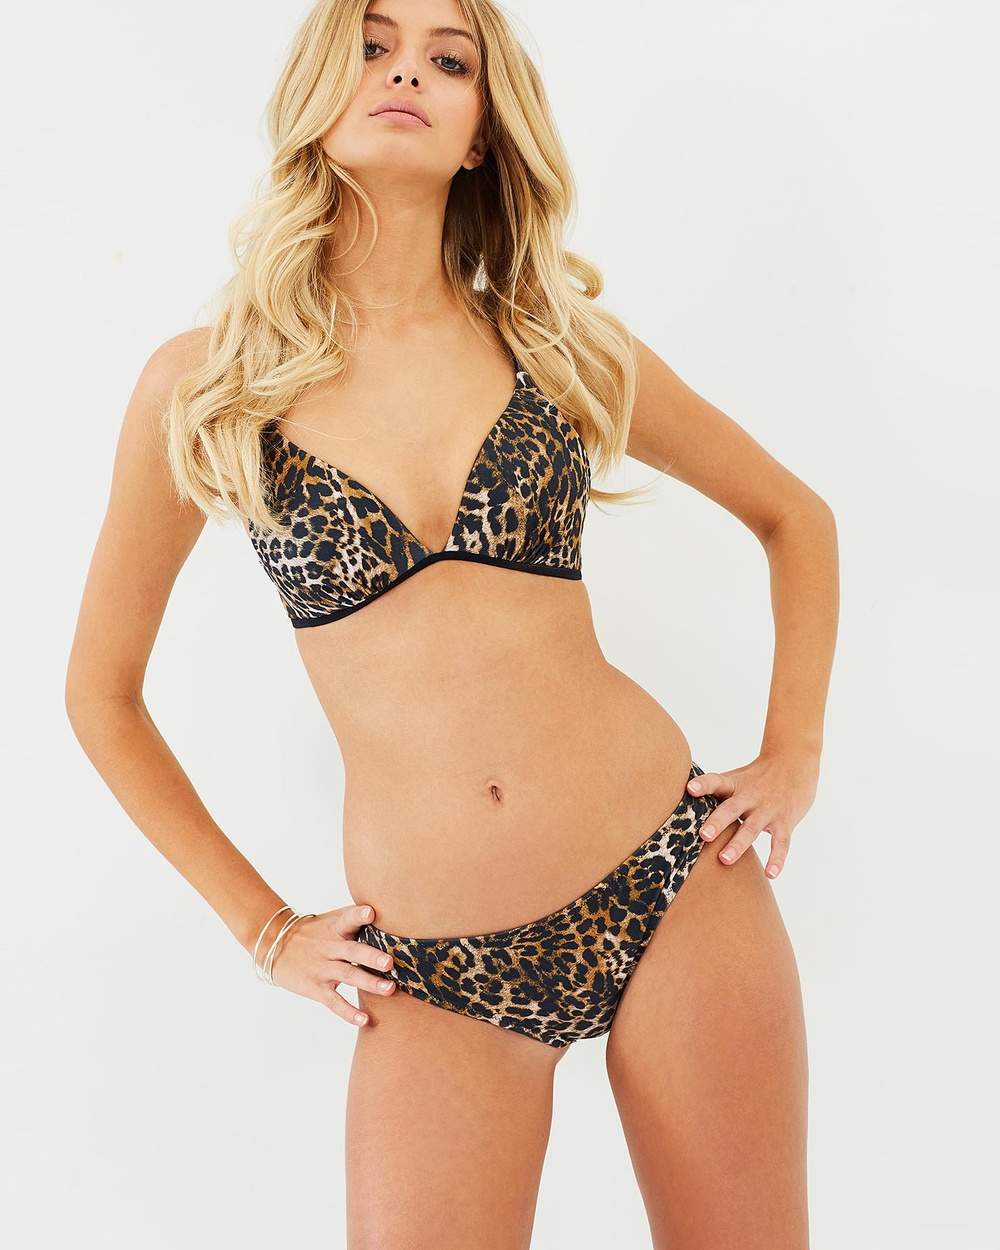 Amore + Sorvete Daiquiri Bottoms Bikini Set Leopard Daiquiri Bottoms